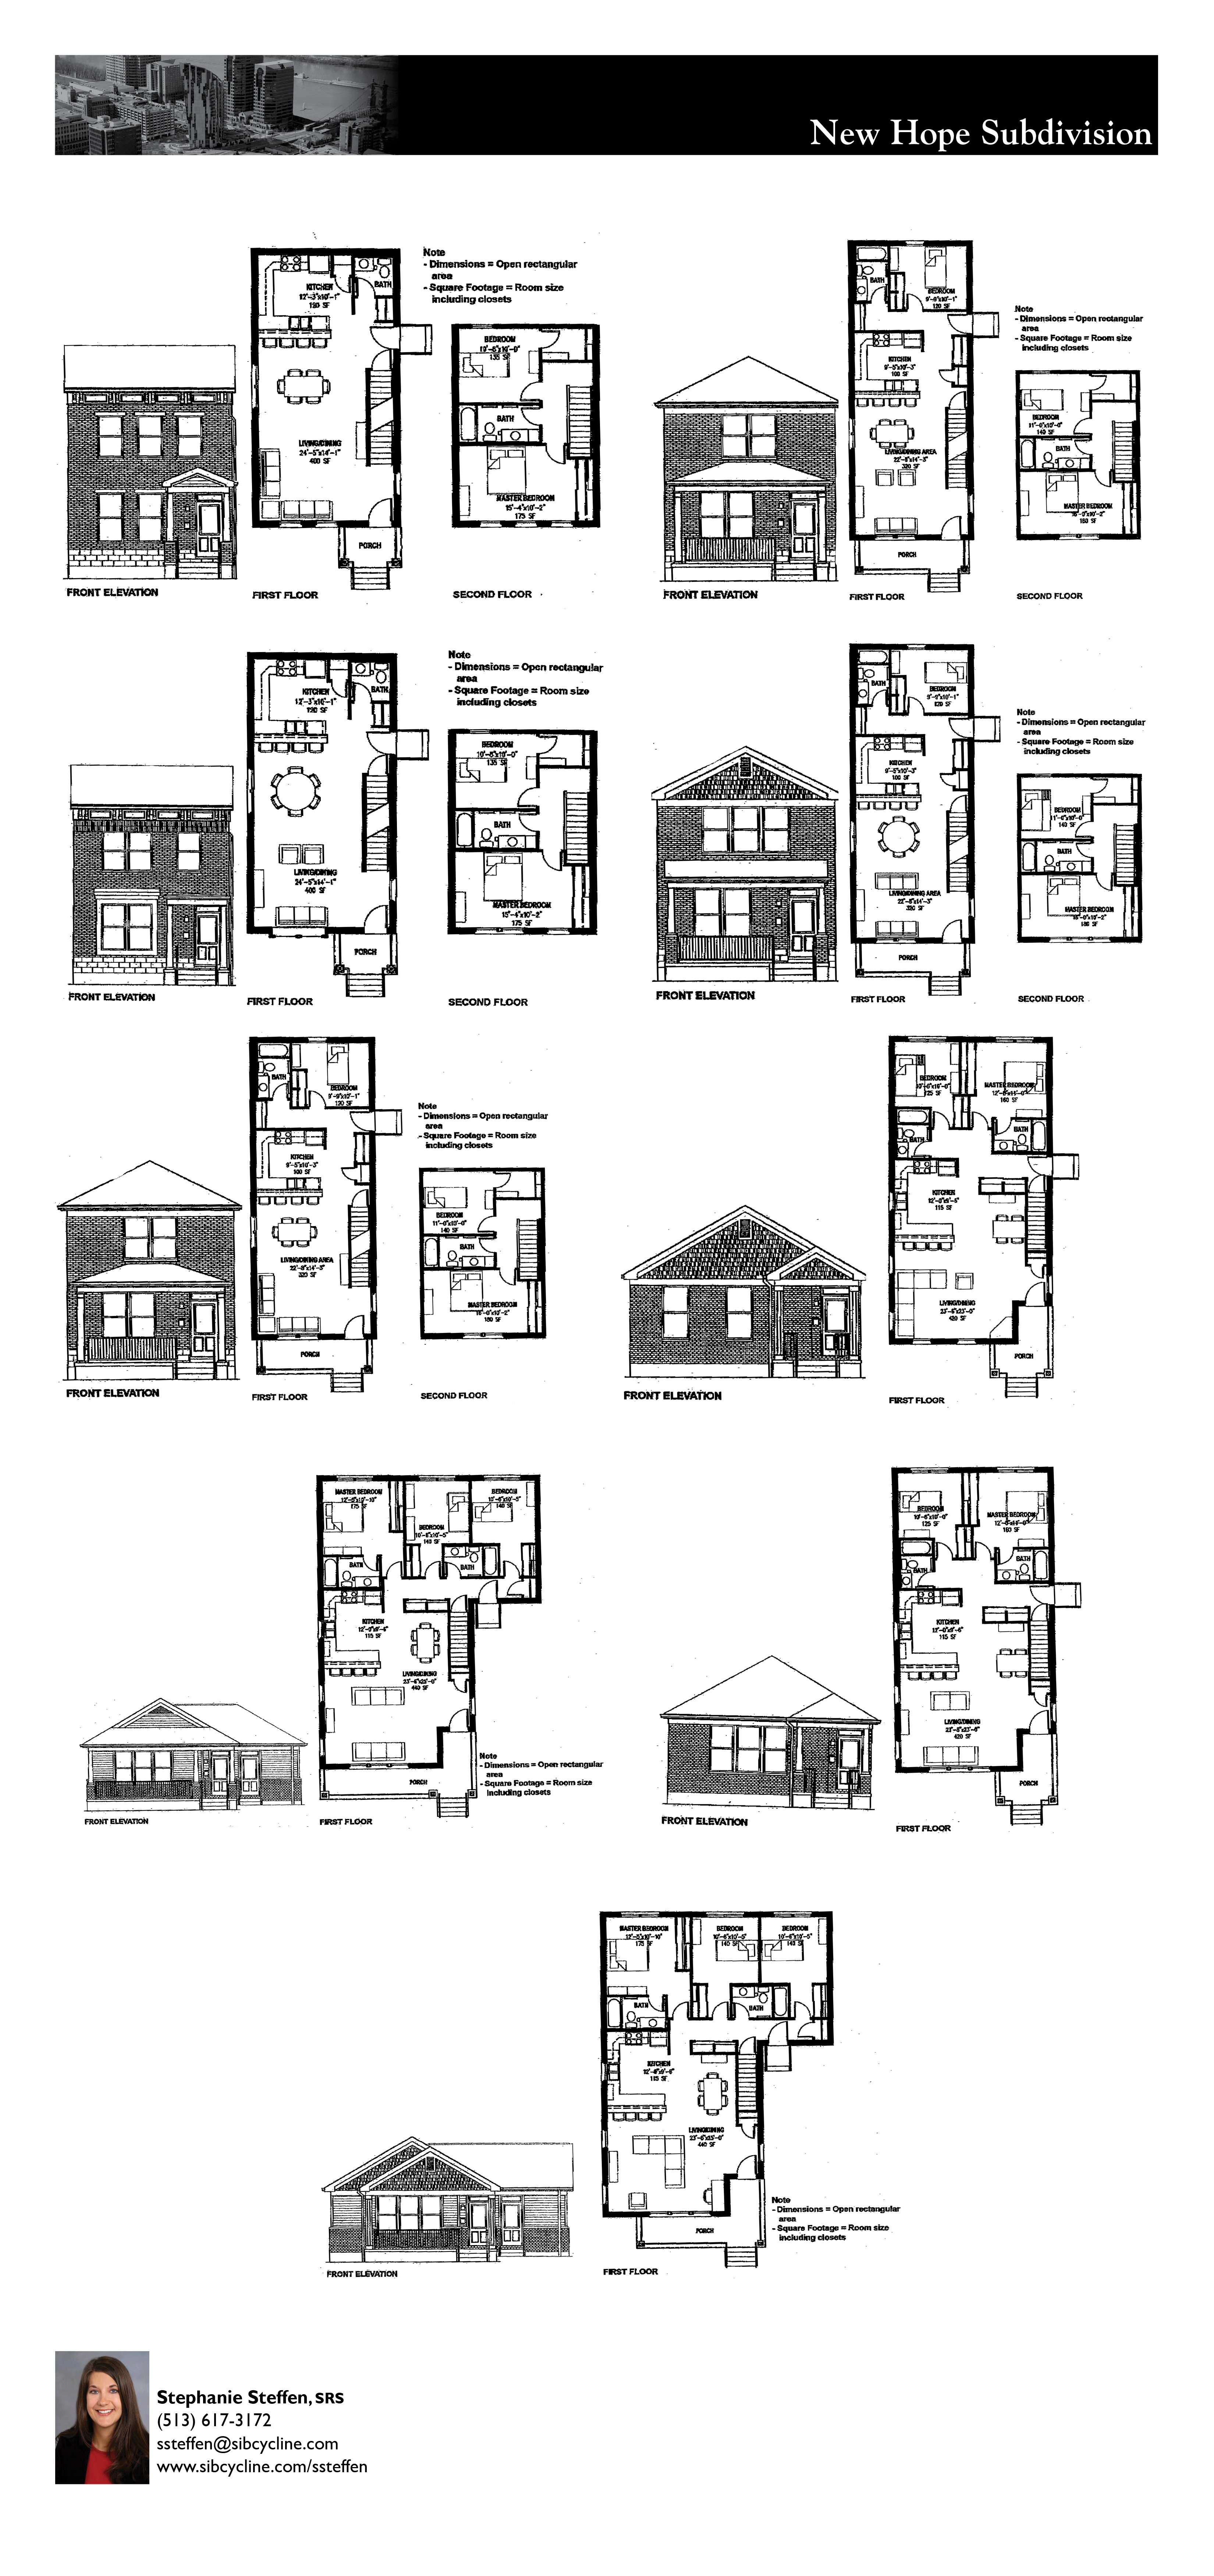 New Hope Subdivision Floor Plan Rendering